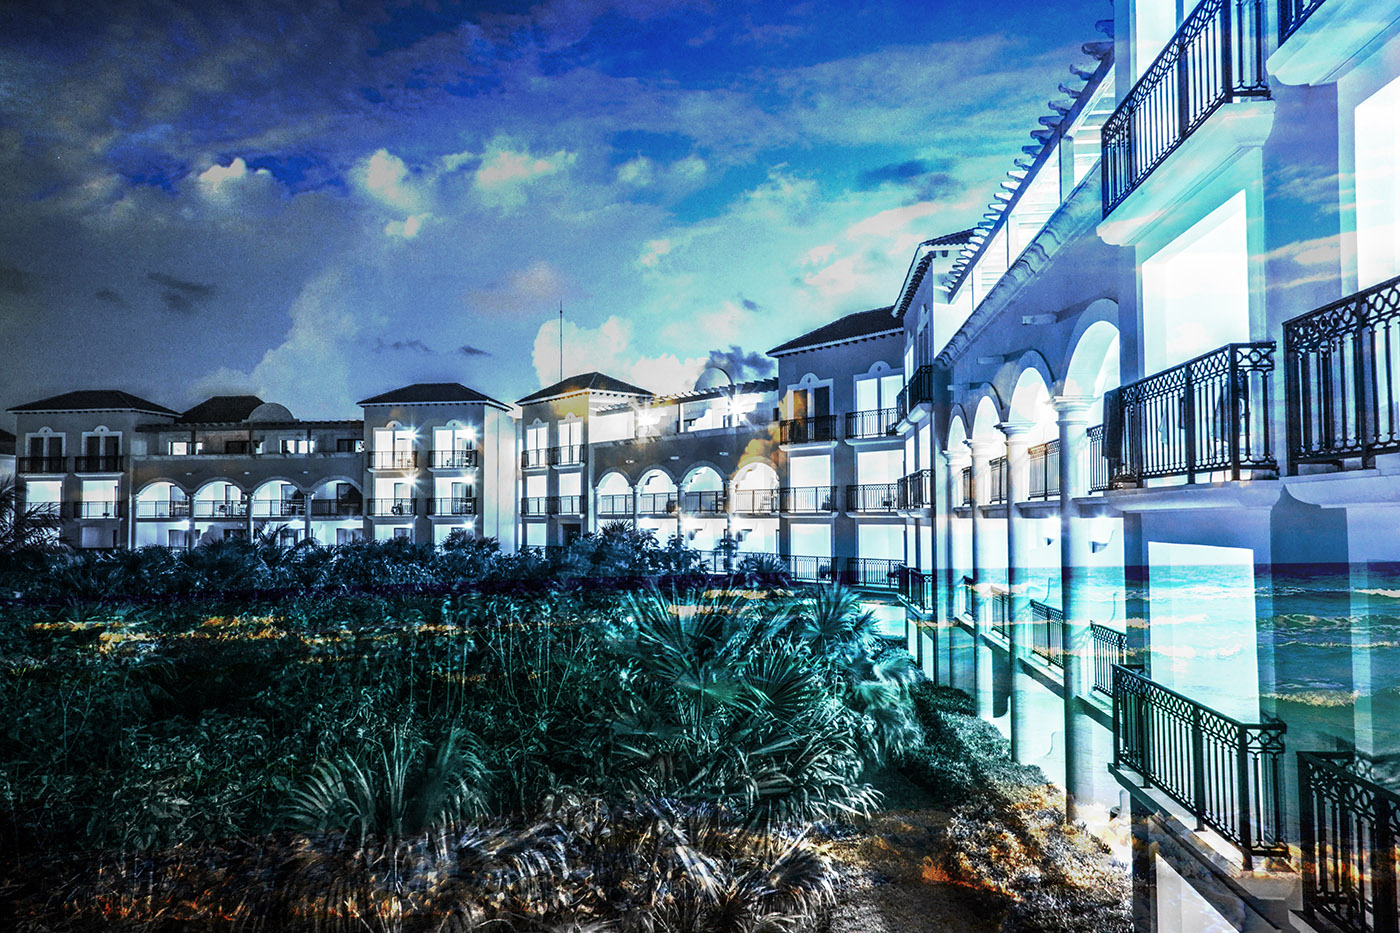 Hotel Resort Photo Montage 03 - Stock Photography